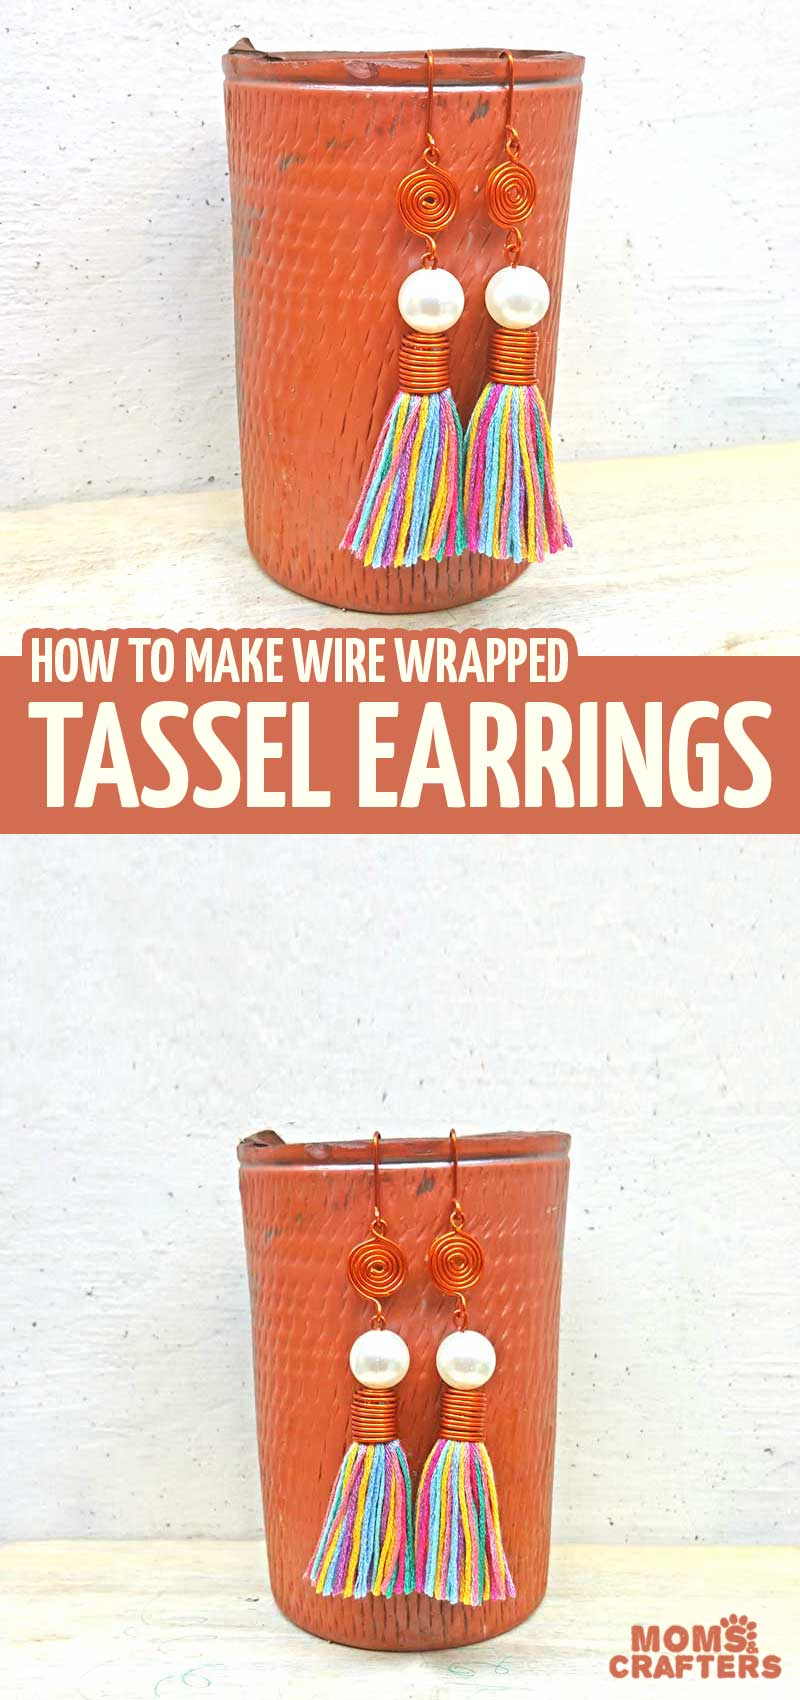 Learn how to make tassel earrings in this fun and quirky DIY jewelry making tutorial for beginners! You'll learn this basic wire wrapping idea - and it's a perfect craft for teens!